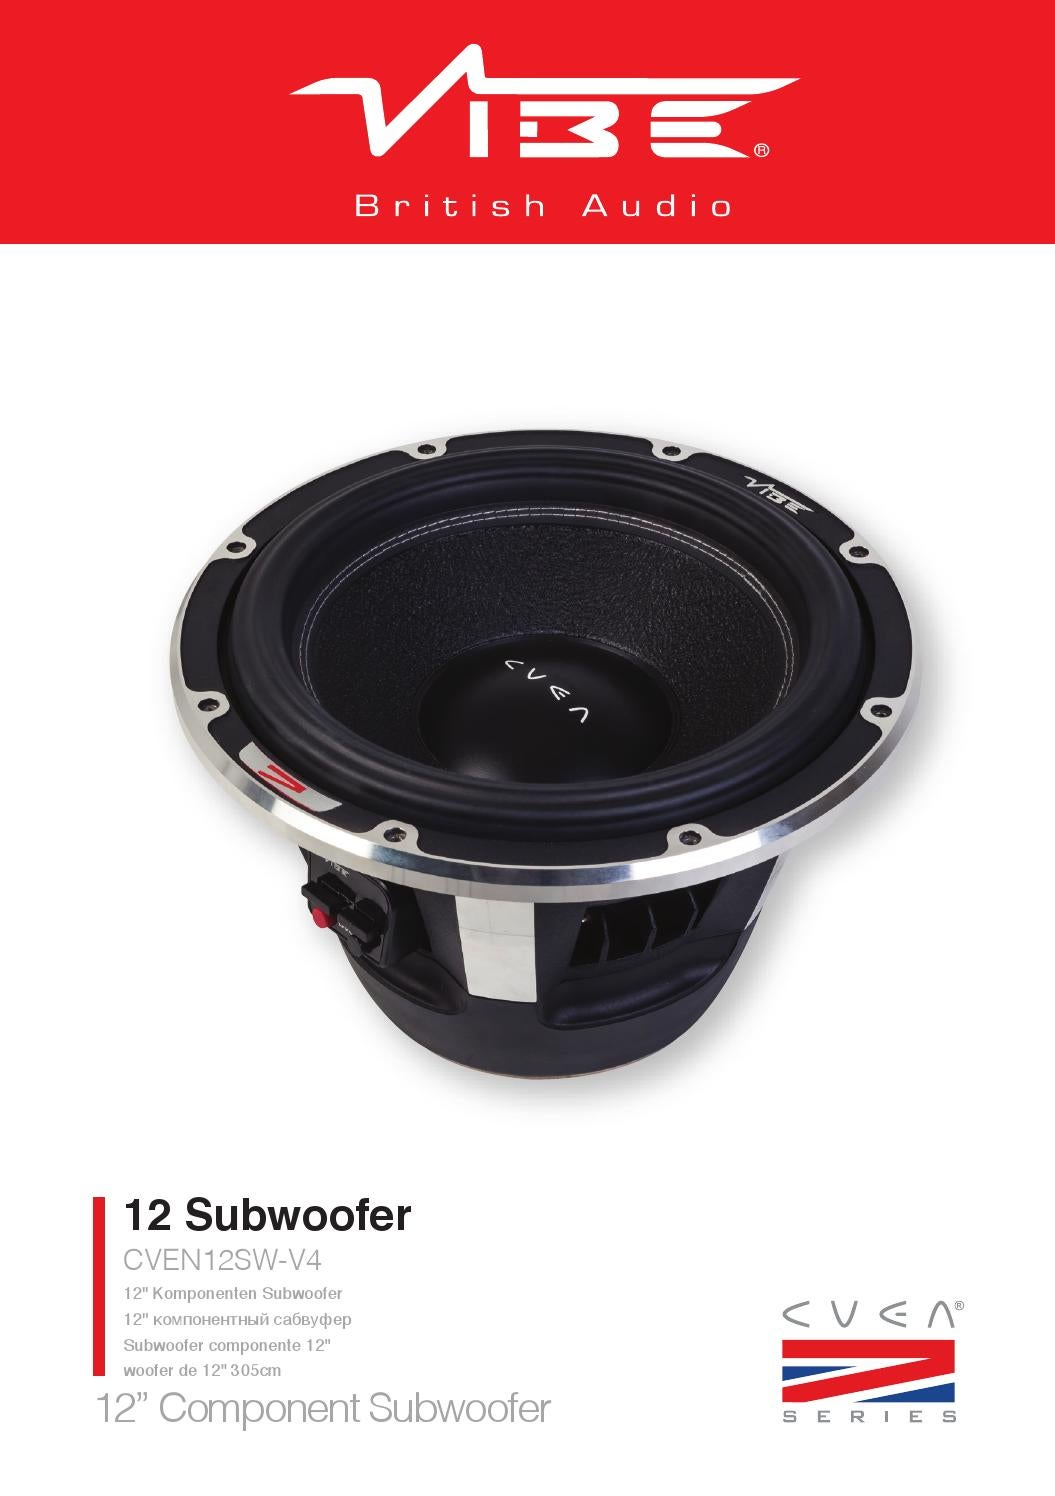 Vibe Subwoofer Wiring Diagram 29 Images 10 Inch Rockford Fosgate Sub Page 1 Cven12sw 12 Manual By Audio Issuu At Cita